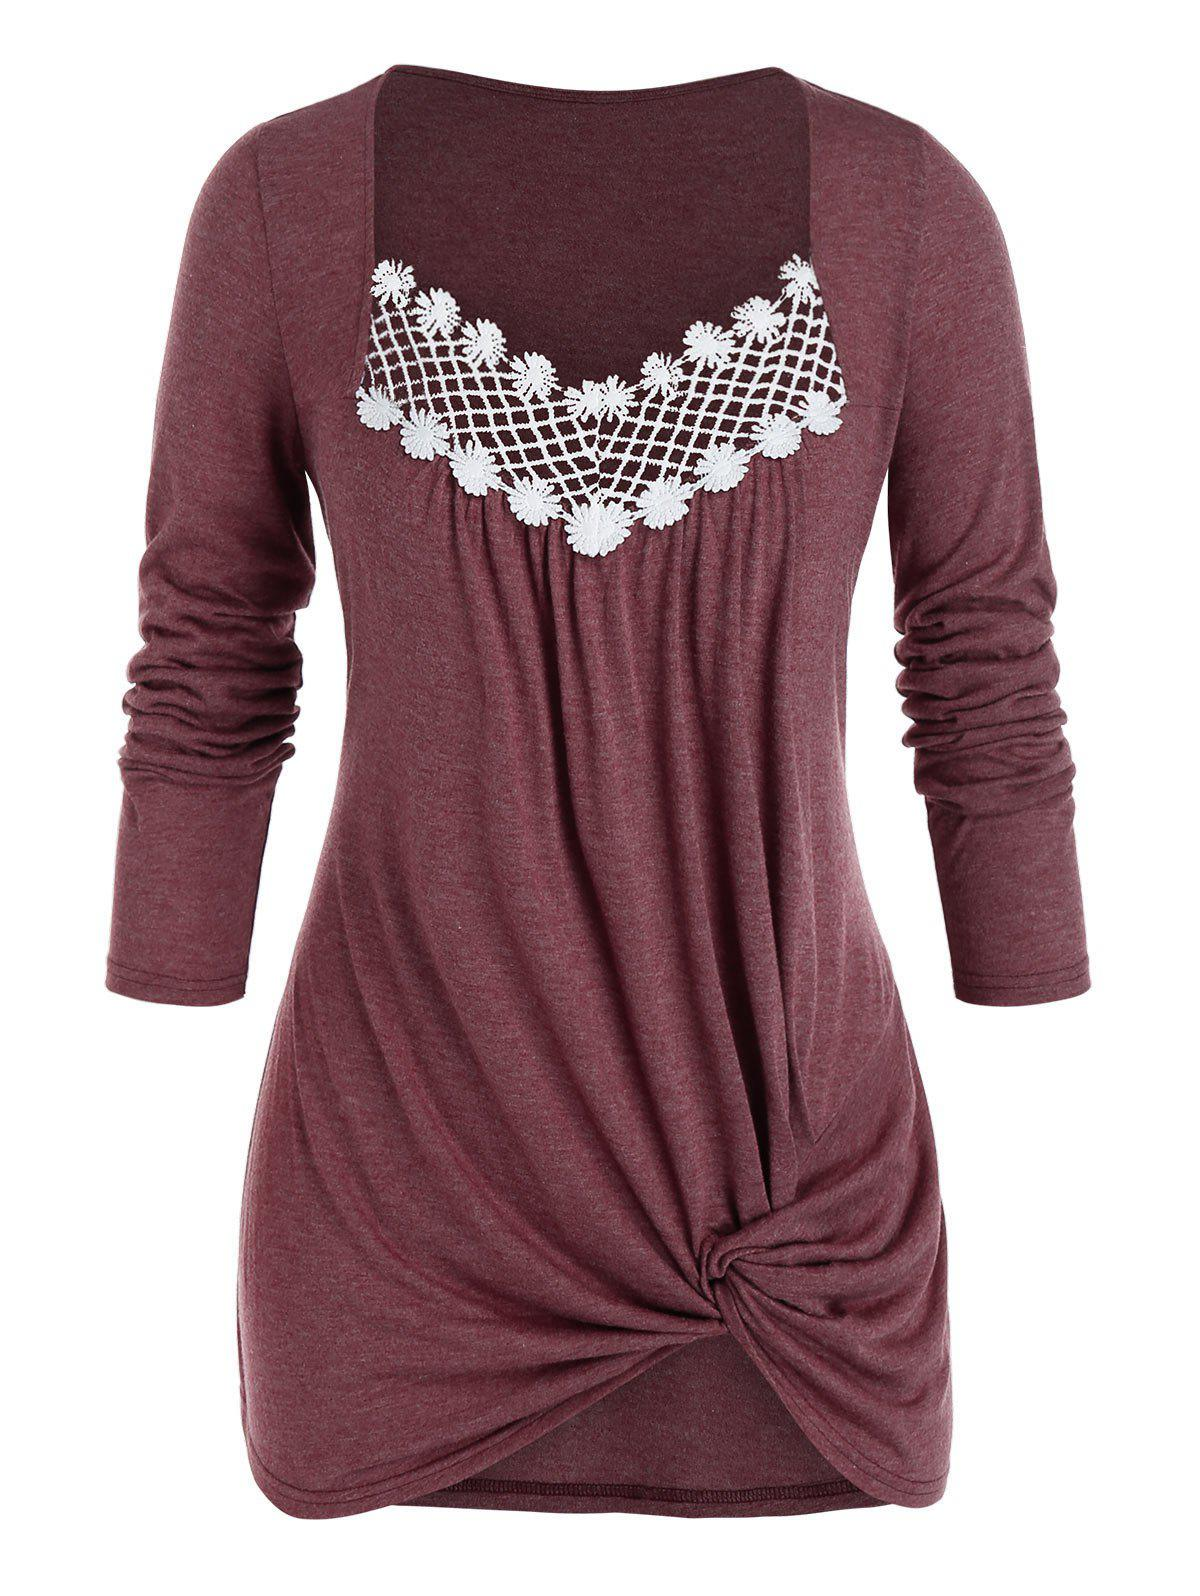 Plus Size Hollow Embroidery Knot Top